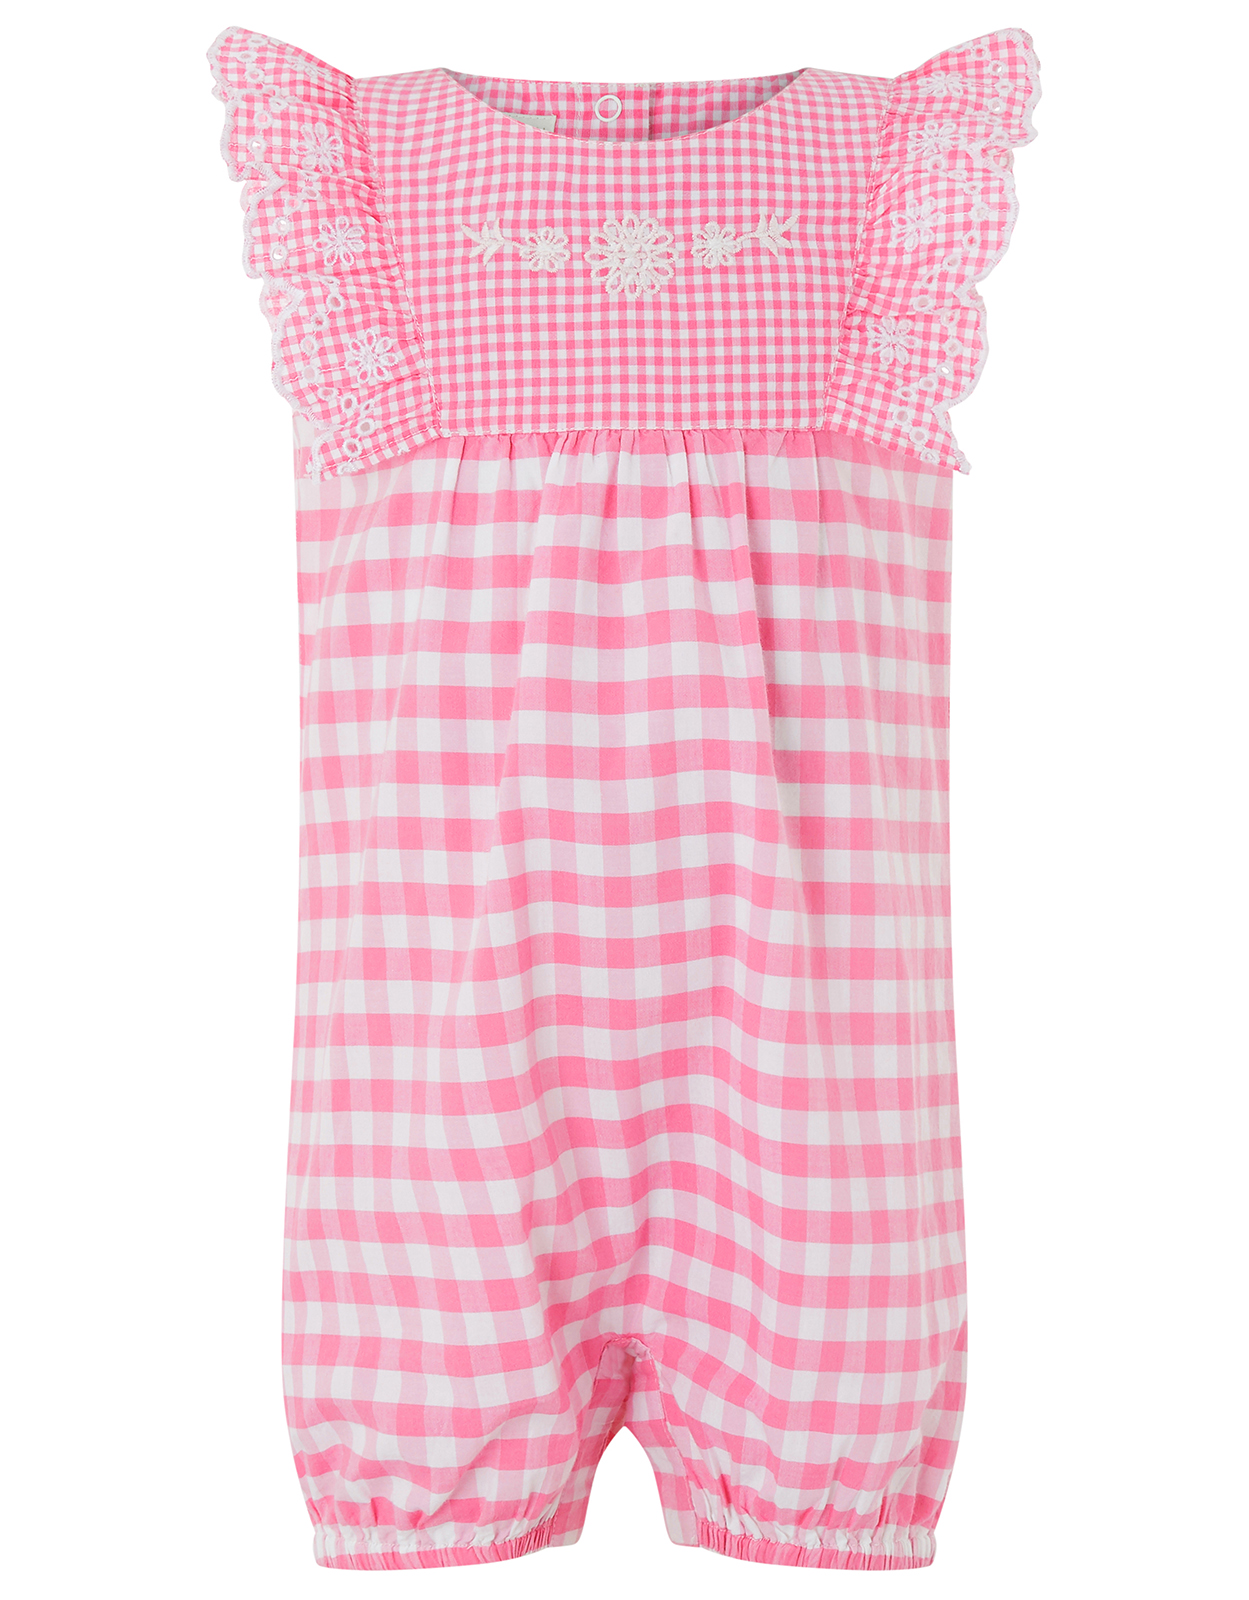 Monsoon Newborn Baby Gracie Gingham Romper